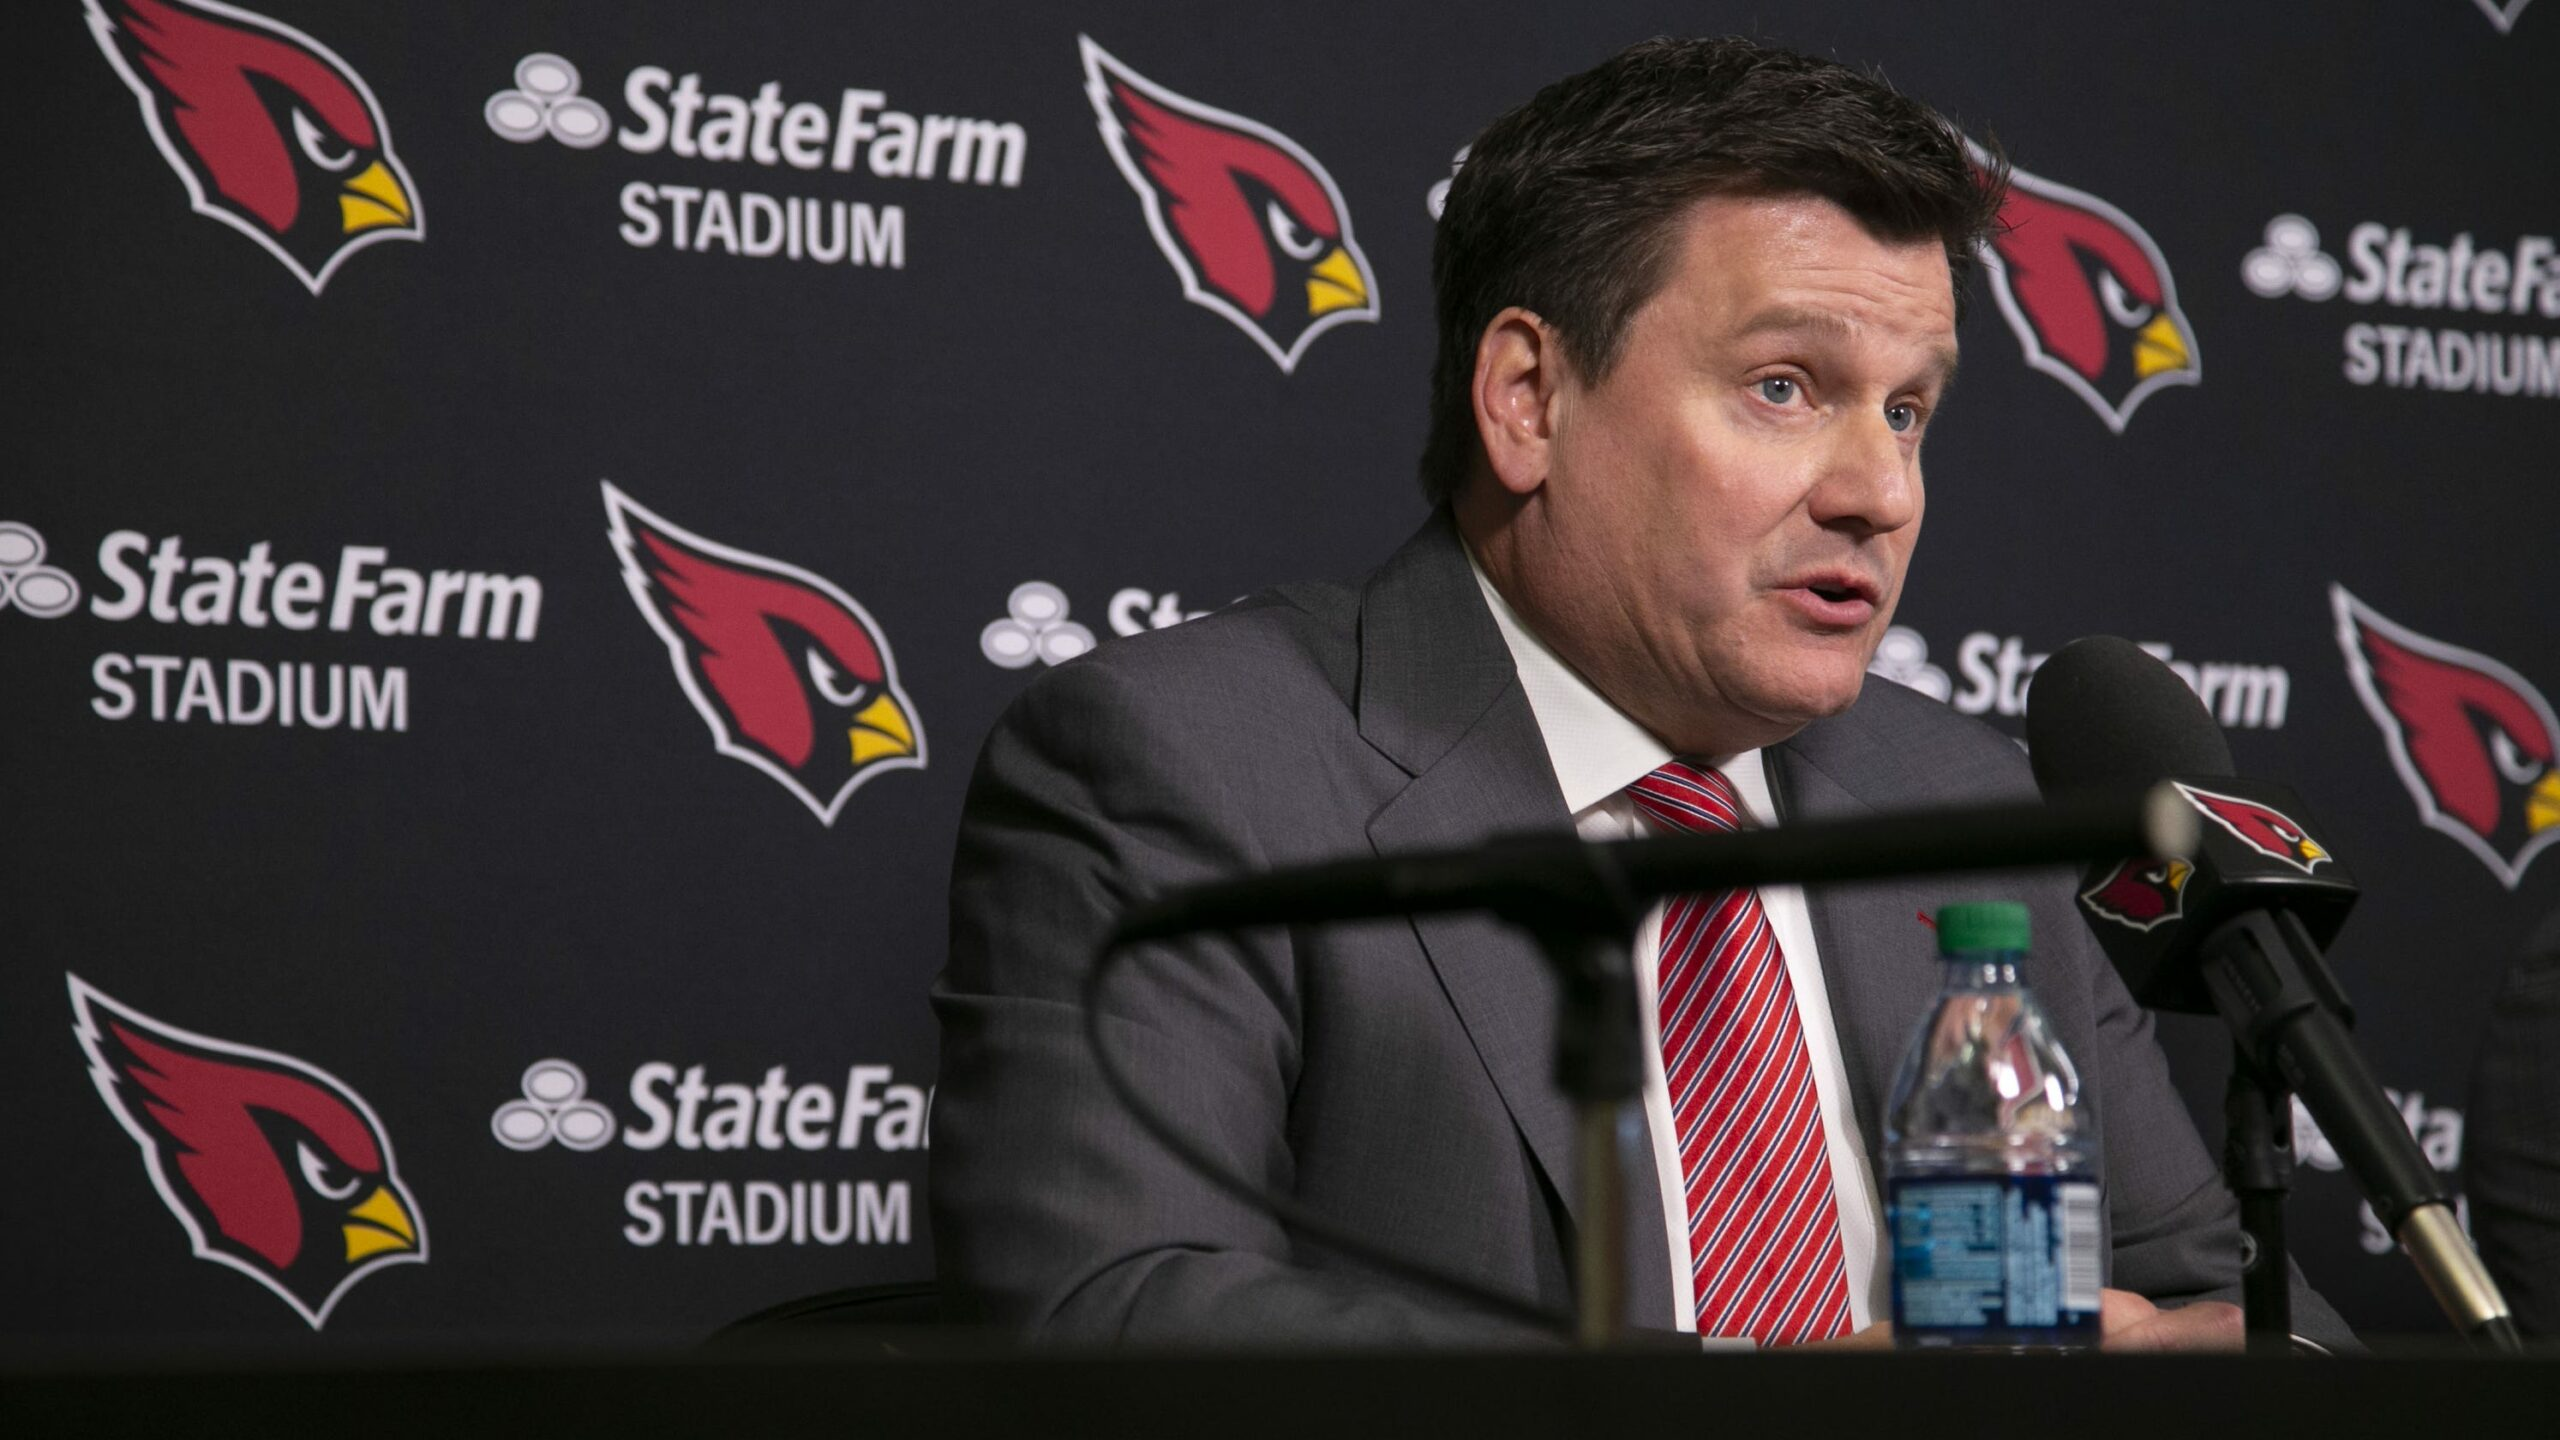 Arizona Cardinals owner released from hospital